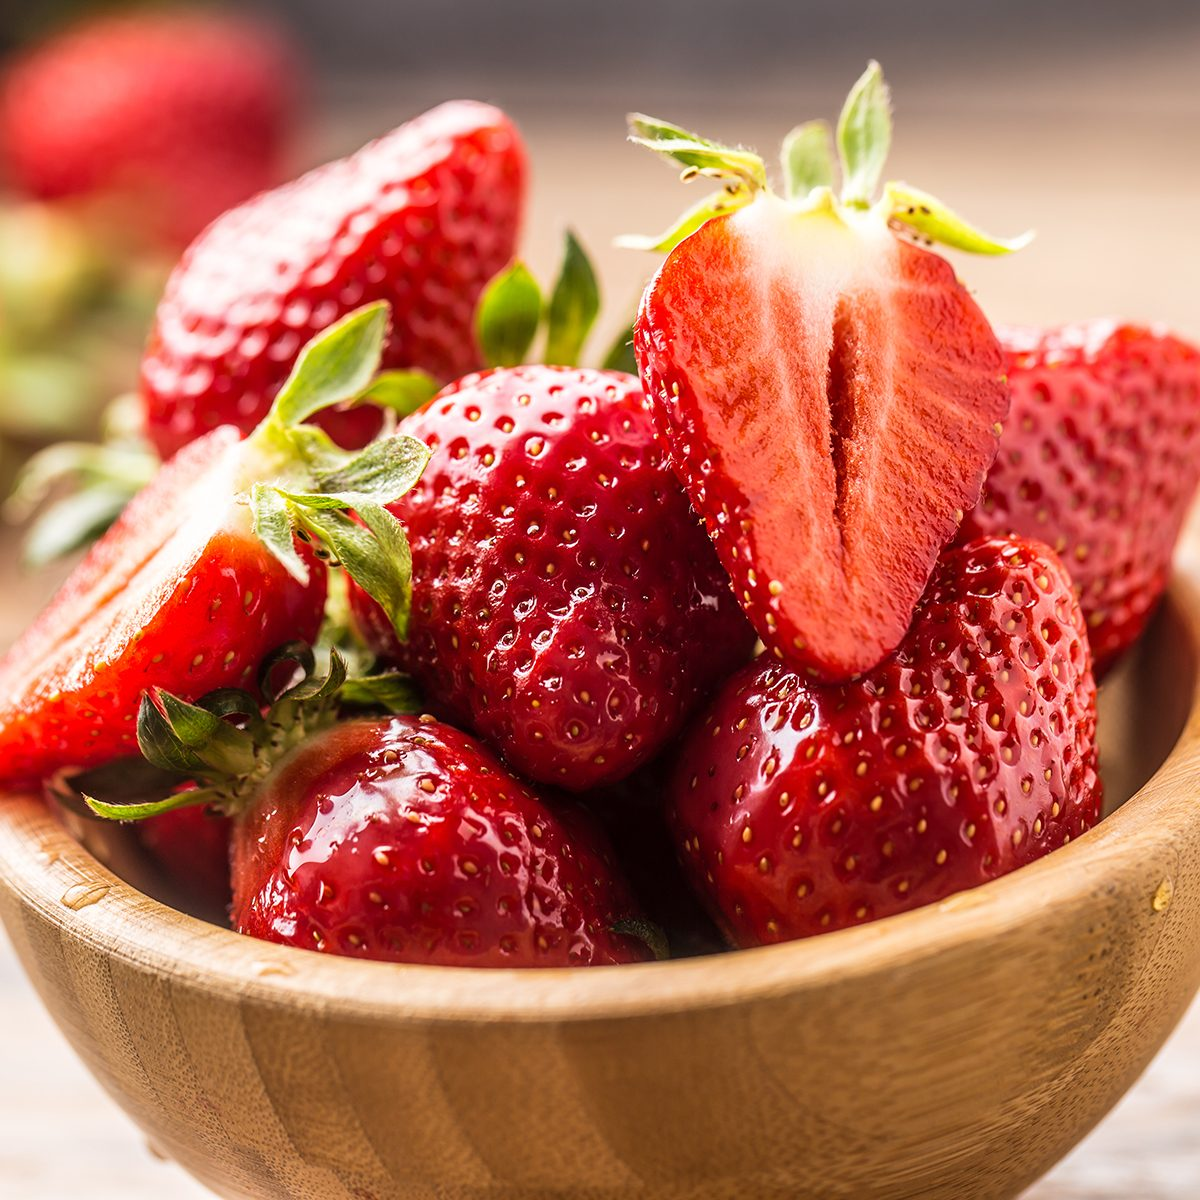 fruits for diabetics Juicy washed strawberries in wooden bowl on kitchen table.